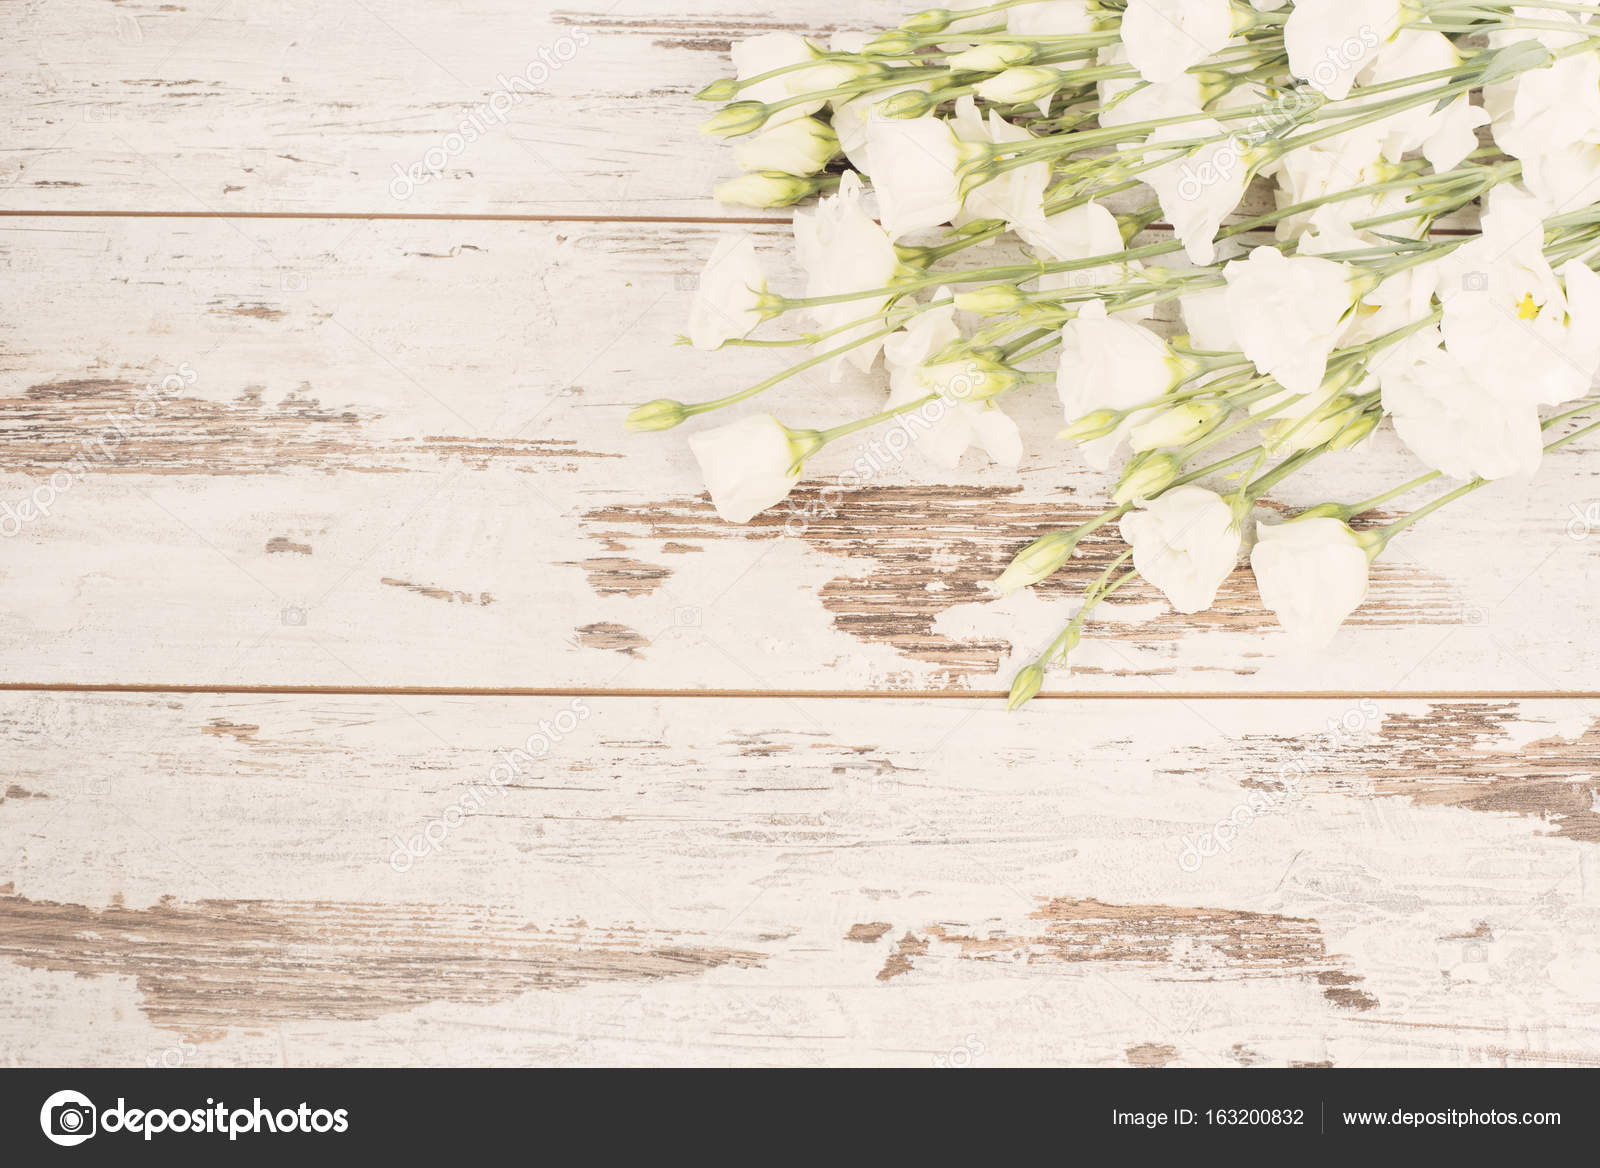 Stunning Fresh Bouquet Of White Flowers On Light Rustic Wooden Background Copy Space Floral Frame Wedding Gift Card Valentines Day Or Mothers